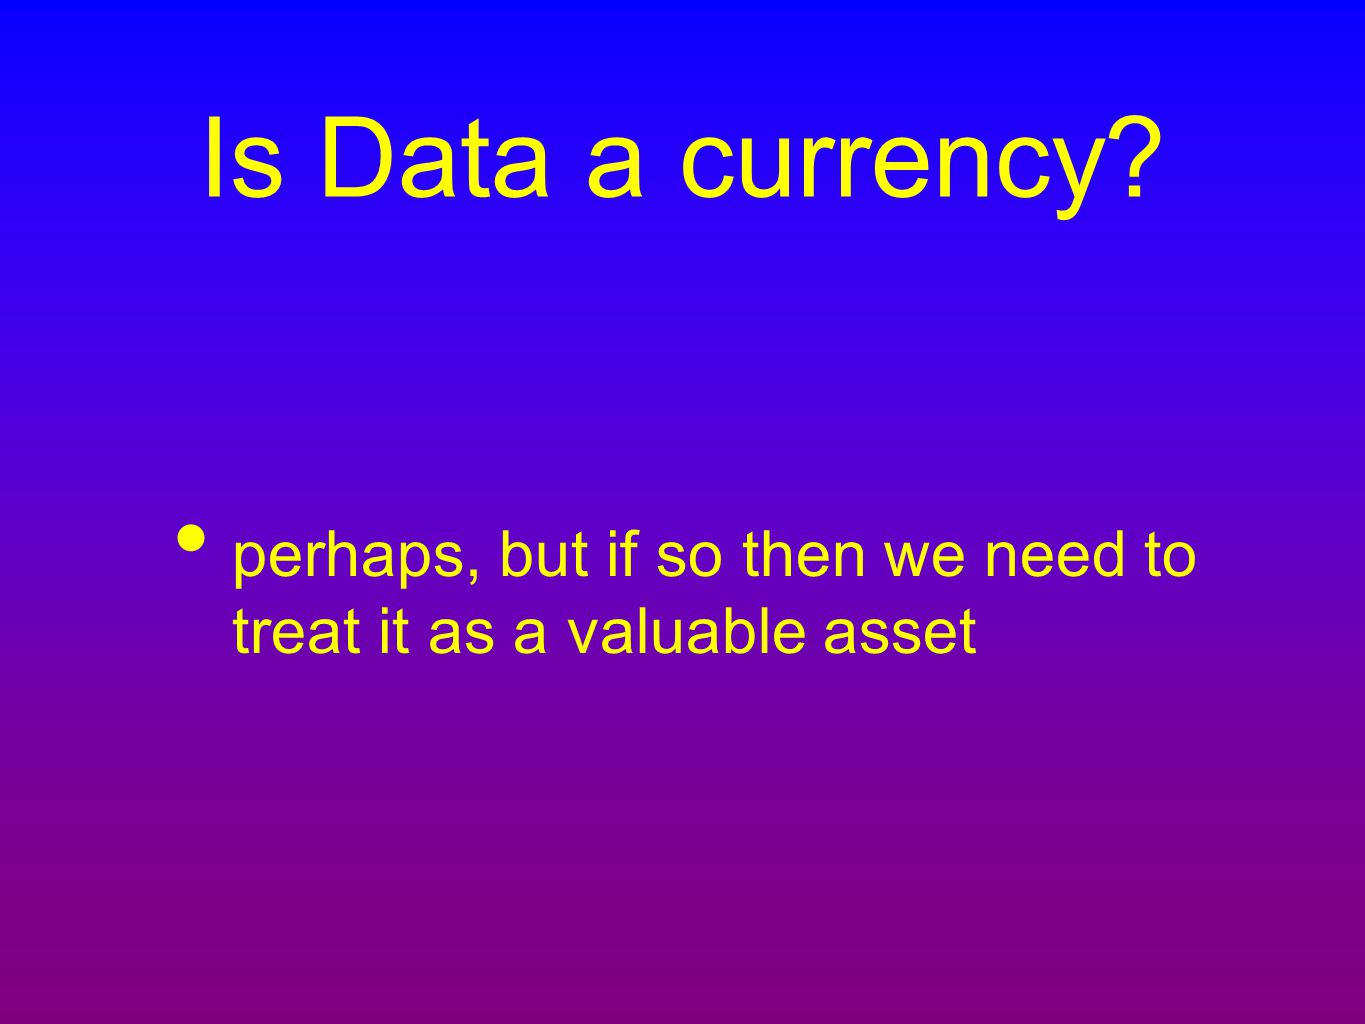 Is Data a currency? perhaps, but if so then we need to treat it as a valuable asset